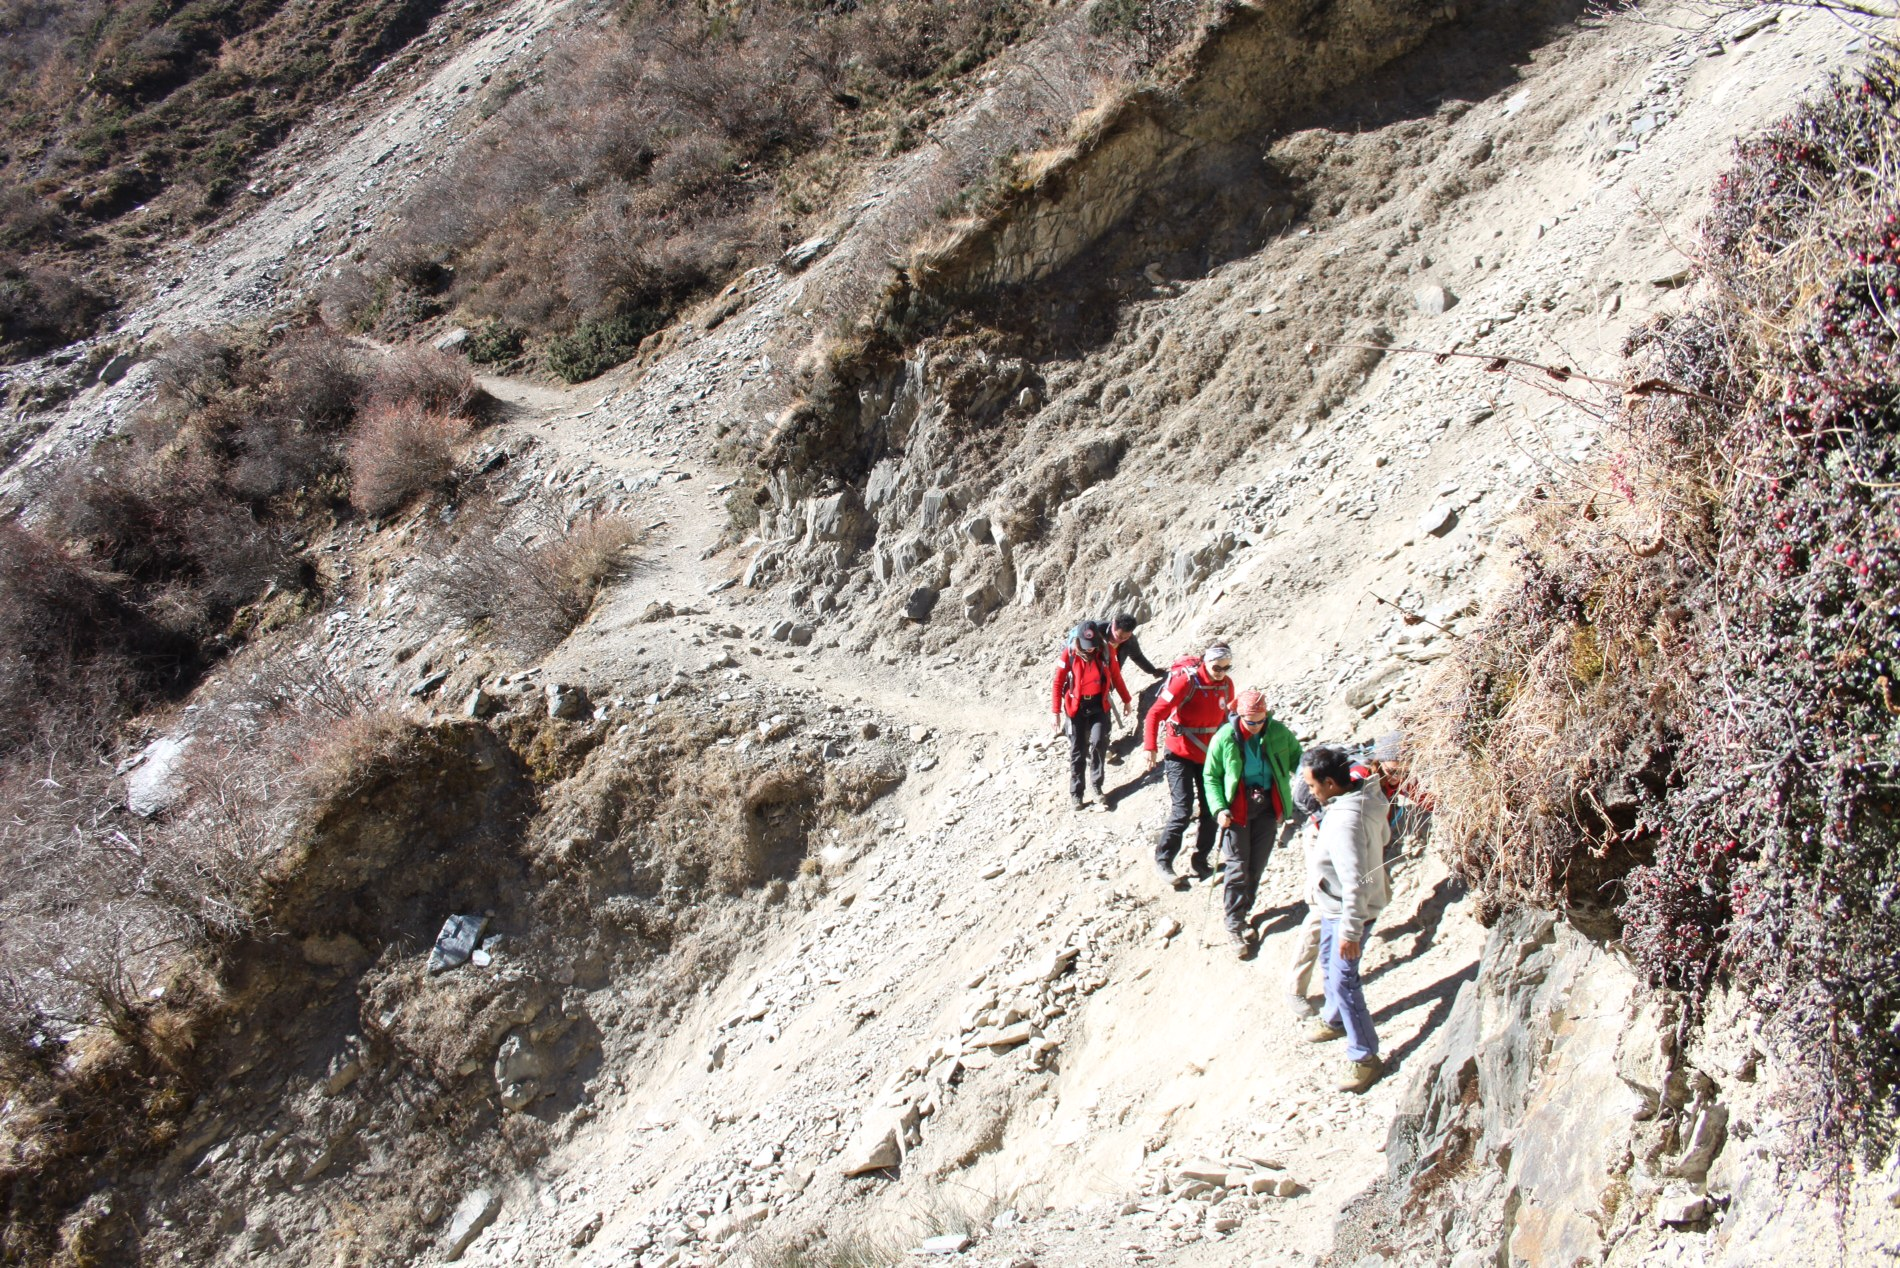 In October 2014, Women on a Mission (WOAM), an all-women team of nine, trudged across glaciers, rivers and landslides in a bid to raise funds for women victims of violence.